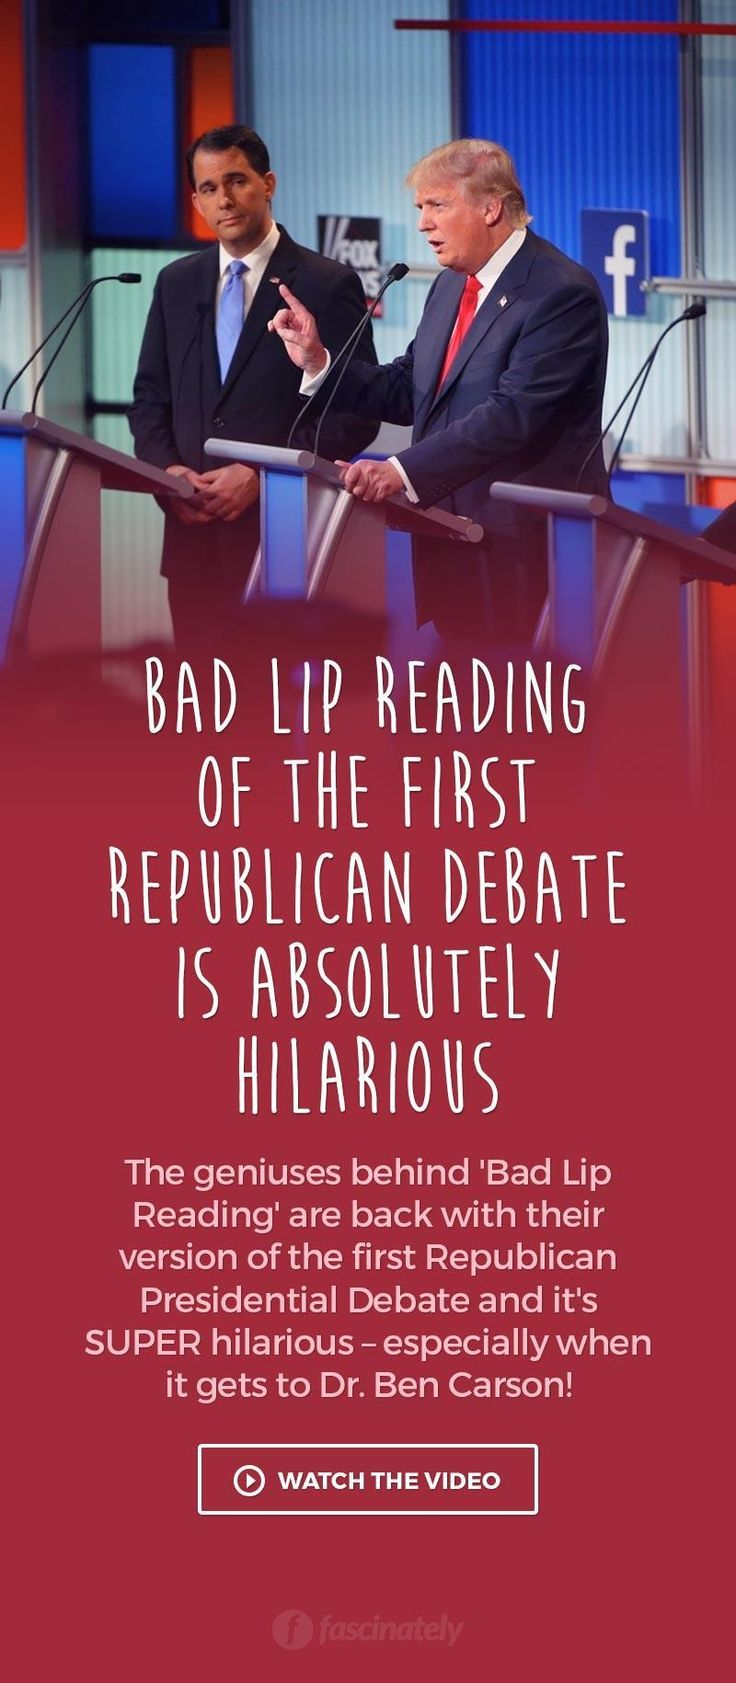 Bad Lip Reading of the First Republican Debate is Absolutely Hilarious